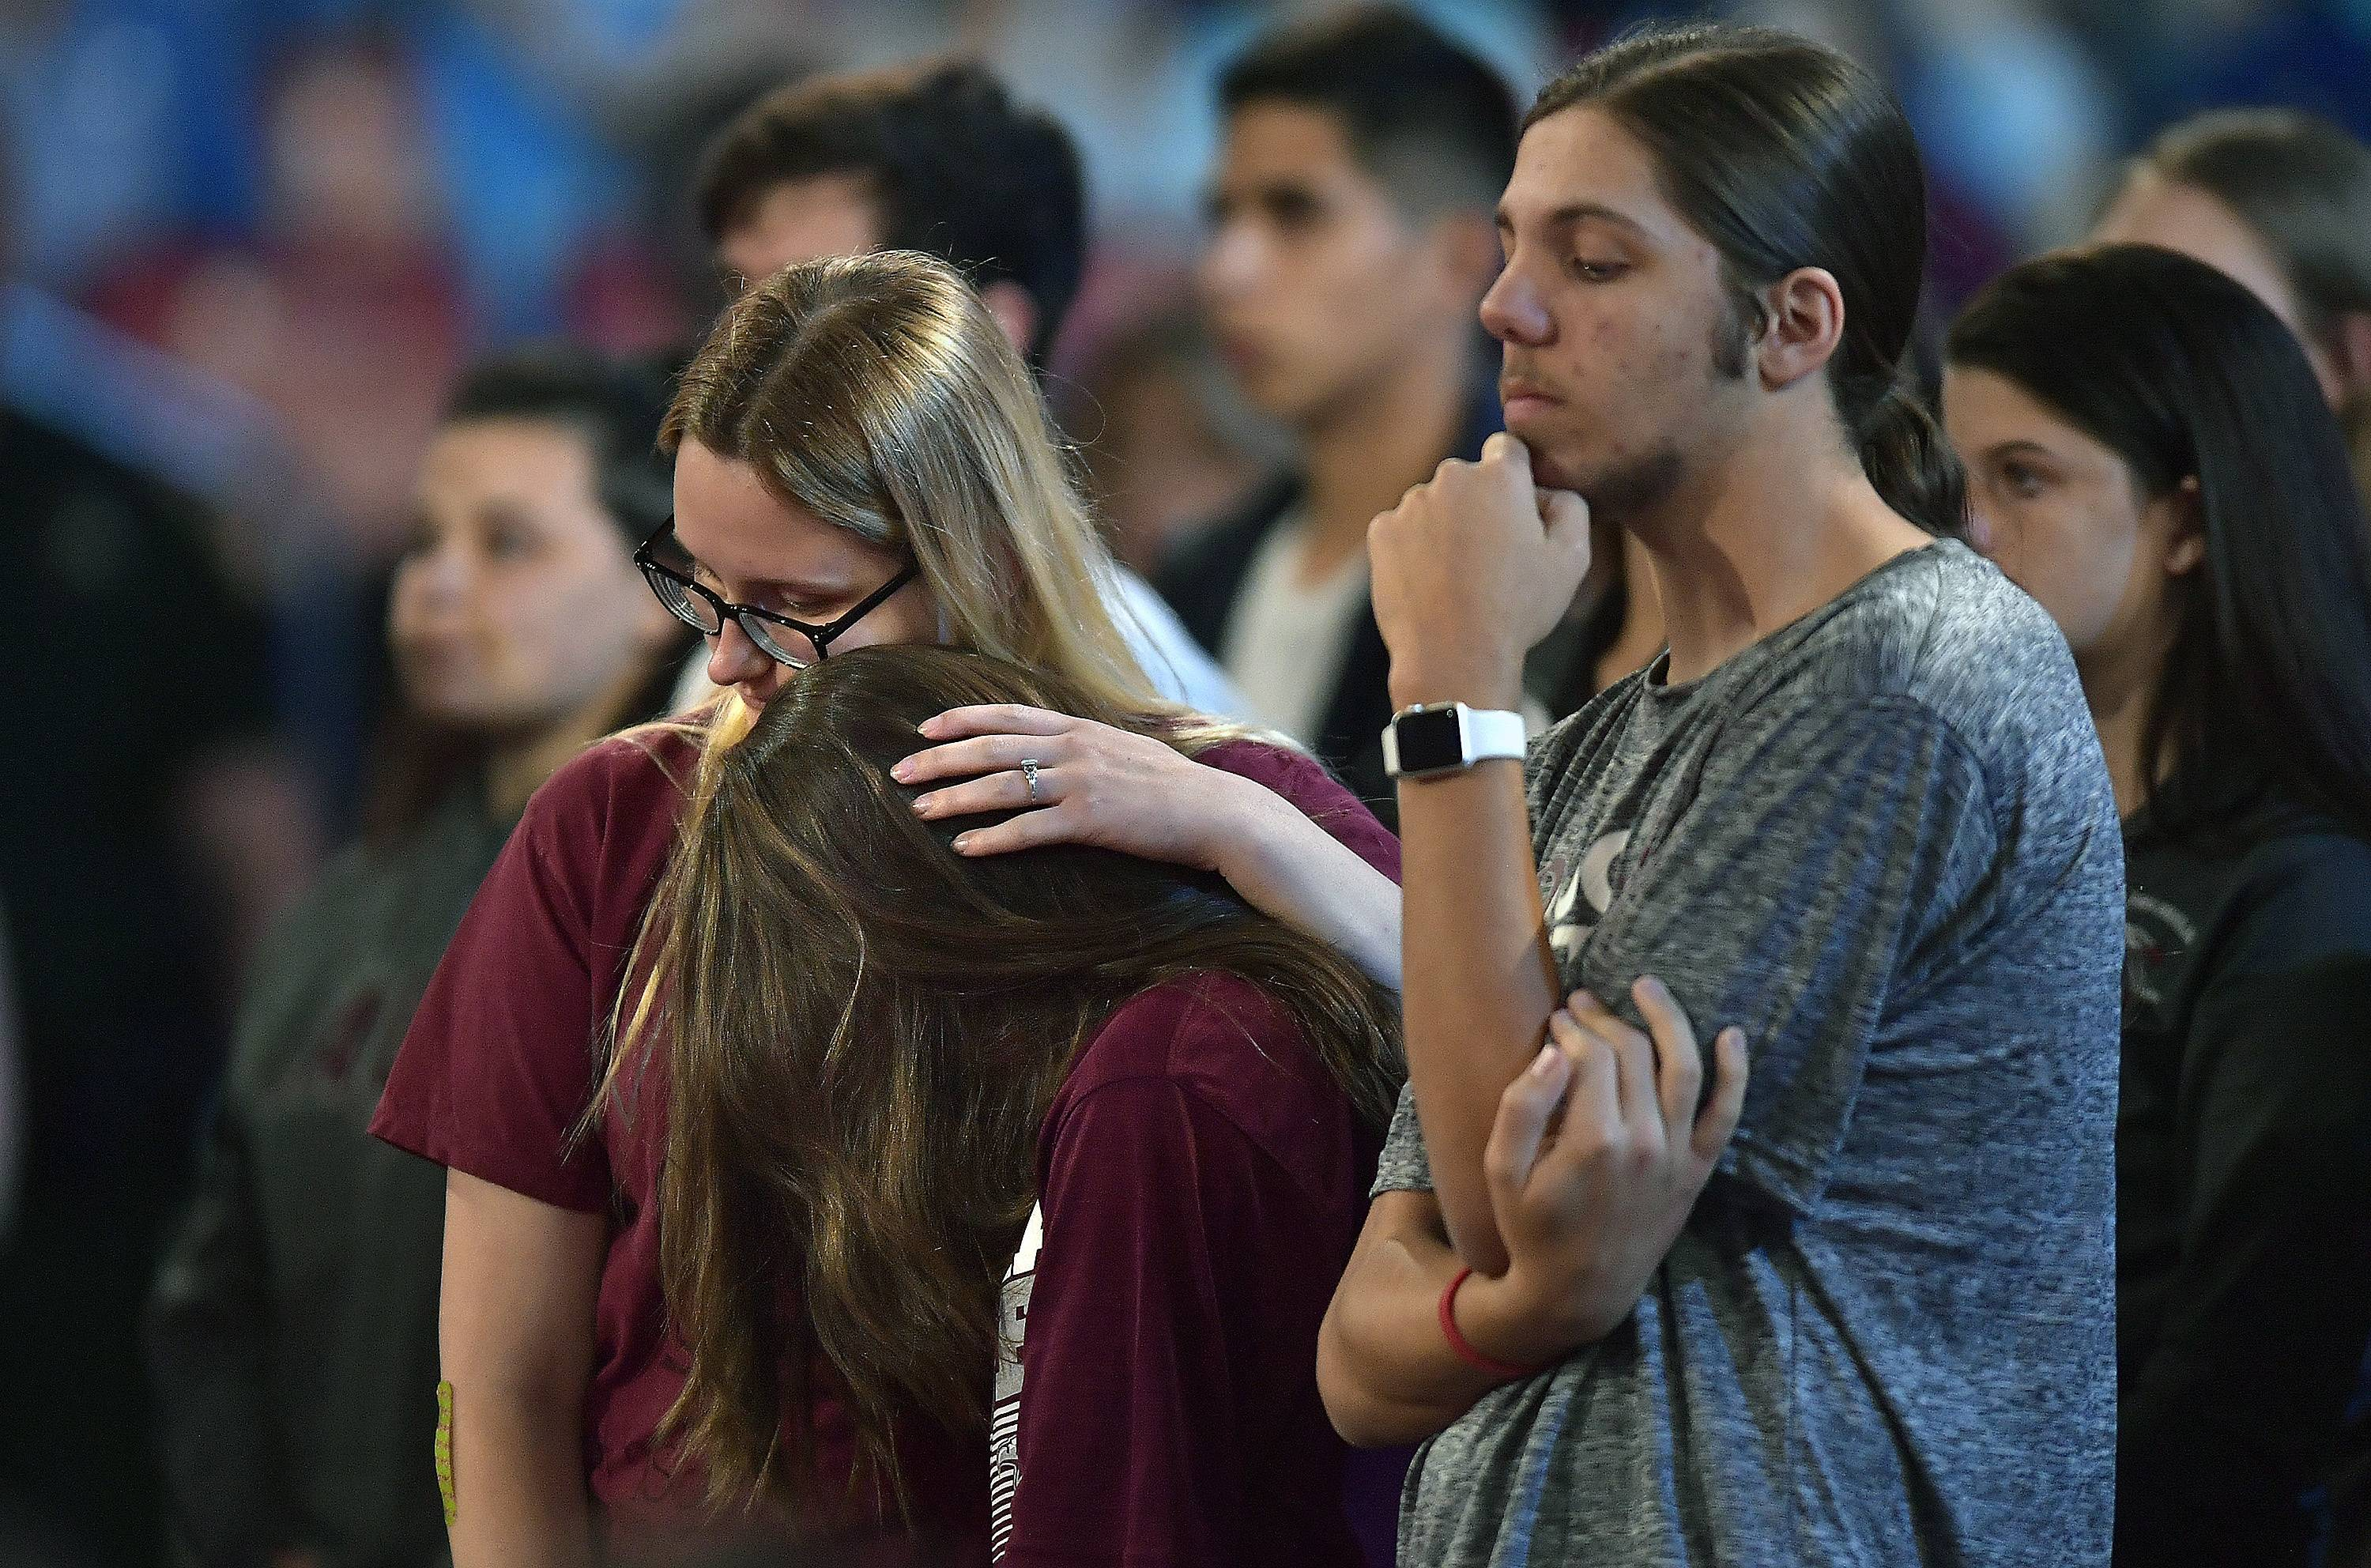 Marjory Stoneman Douglas High School students listen to Sheriff Scott Israel speak Wednesday before a CNN town hall broadcast at the BB & T Center in Sunrise, Florida.